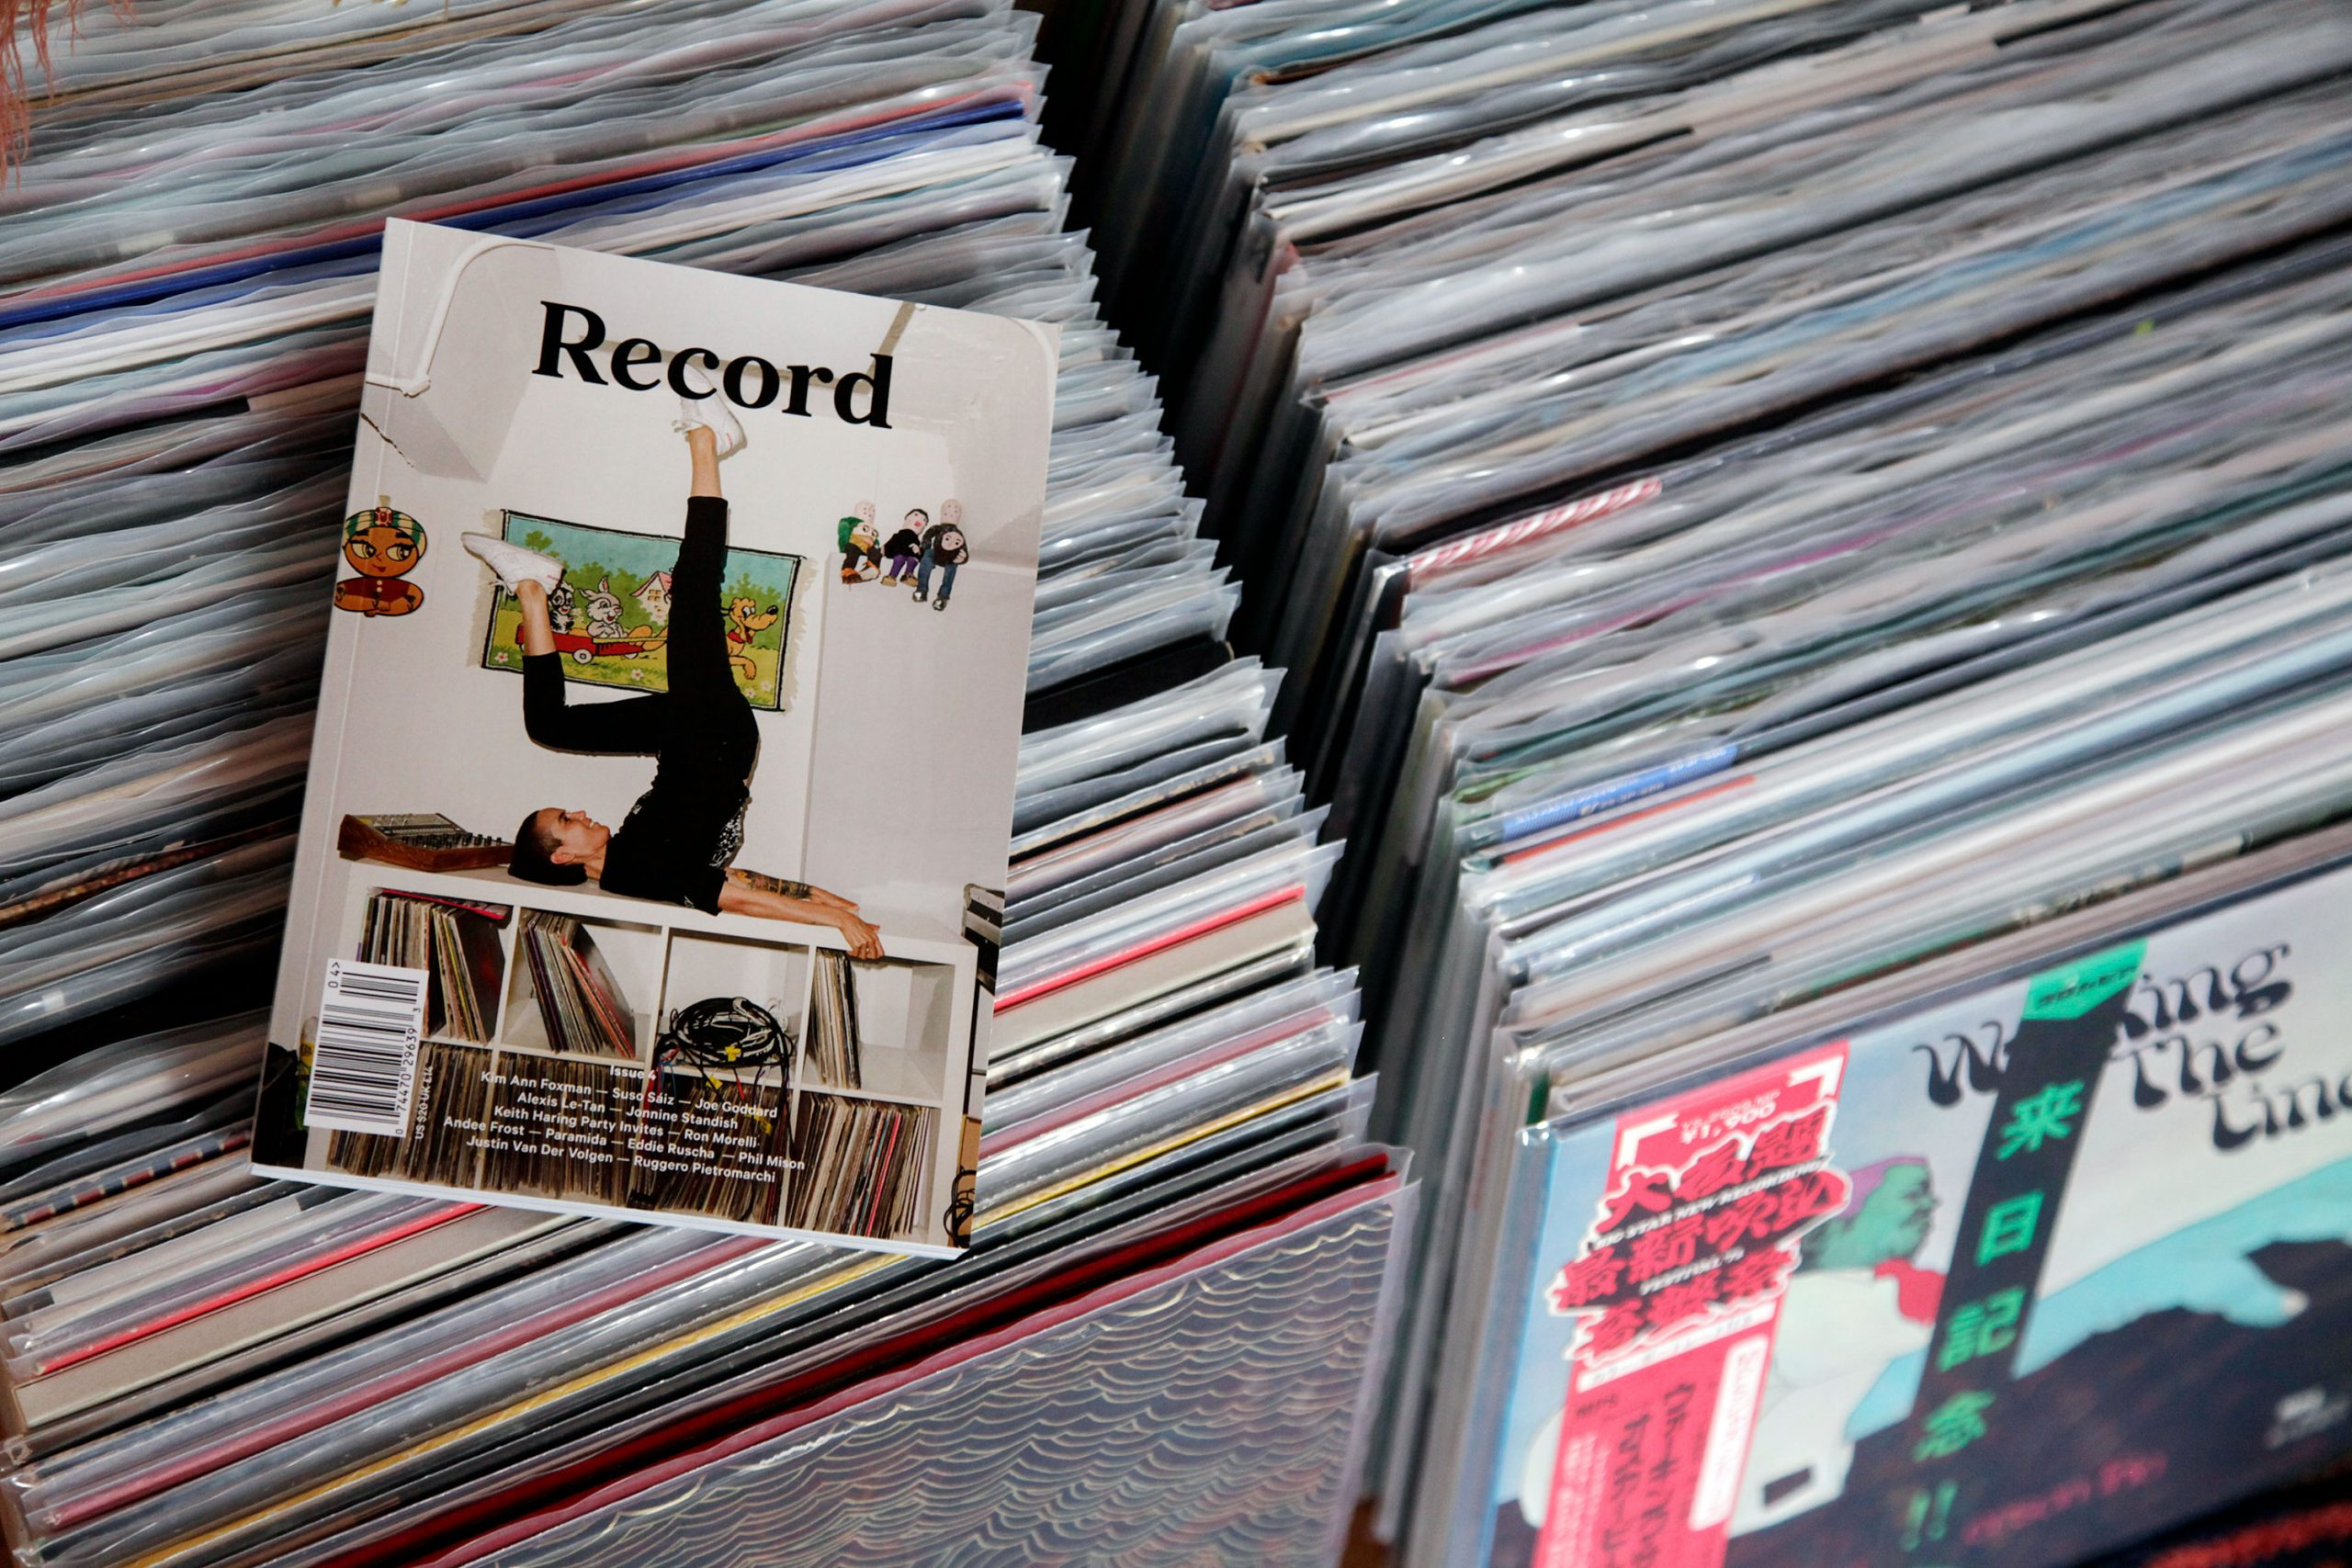 Record Magazine: Sharing the Culture of Vinyl